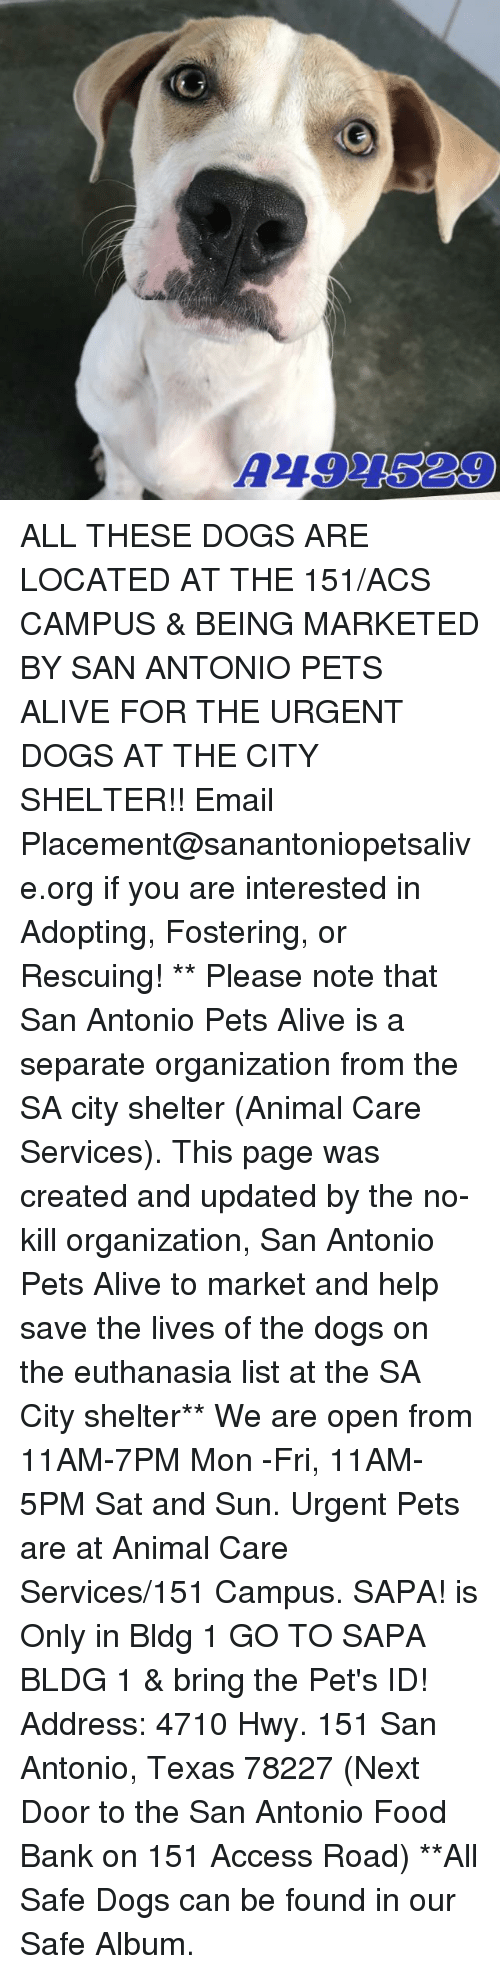 Alive, Dogs, and Food: A494529 ALL THESE DOGS ARE LOCATED AT THE 151/ACS CAMPUS & BEING MARKETED BY SAN ANTONIO PETS ALIVE FOR THE URGENT DOGS AT THE CITY SHELTER!!  Email Placement@sanantoniopetsalive.org if you are interested in Adopting, Fostering, or Rescuing!                                                                                                                                                                                                                                                                                                                                                             ** Please note that San Antonio Pets Alive is a separate organization from the SA city shelter (Animal Care Services). This page was created and updated by the no-kill organization, San Antonio Pets Alive to market and help save the lives of the dogs on the euthanasia list at the SA City shelter**  We are open from 11AM-7PM Mon -Fri, 11AM-5PM Sat and Sun. Urgent Pets are at Animal Care Services/151 Campus. SAPA! is Only in Bldg 1 GO TO SAPA BLDG 1 & bring the Pet's ID! Address: 4710 Hwy. 151 San Antonio, Texas 78227 (Next Door to the San Antonio Food Bank on 151 Access Road) **All Safe Dogs can be found in our Safe Album.